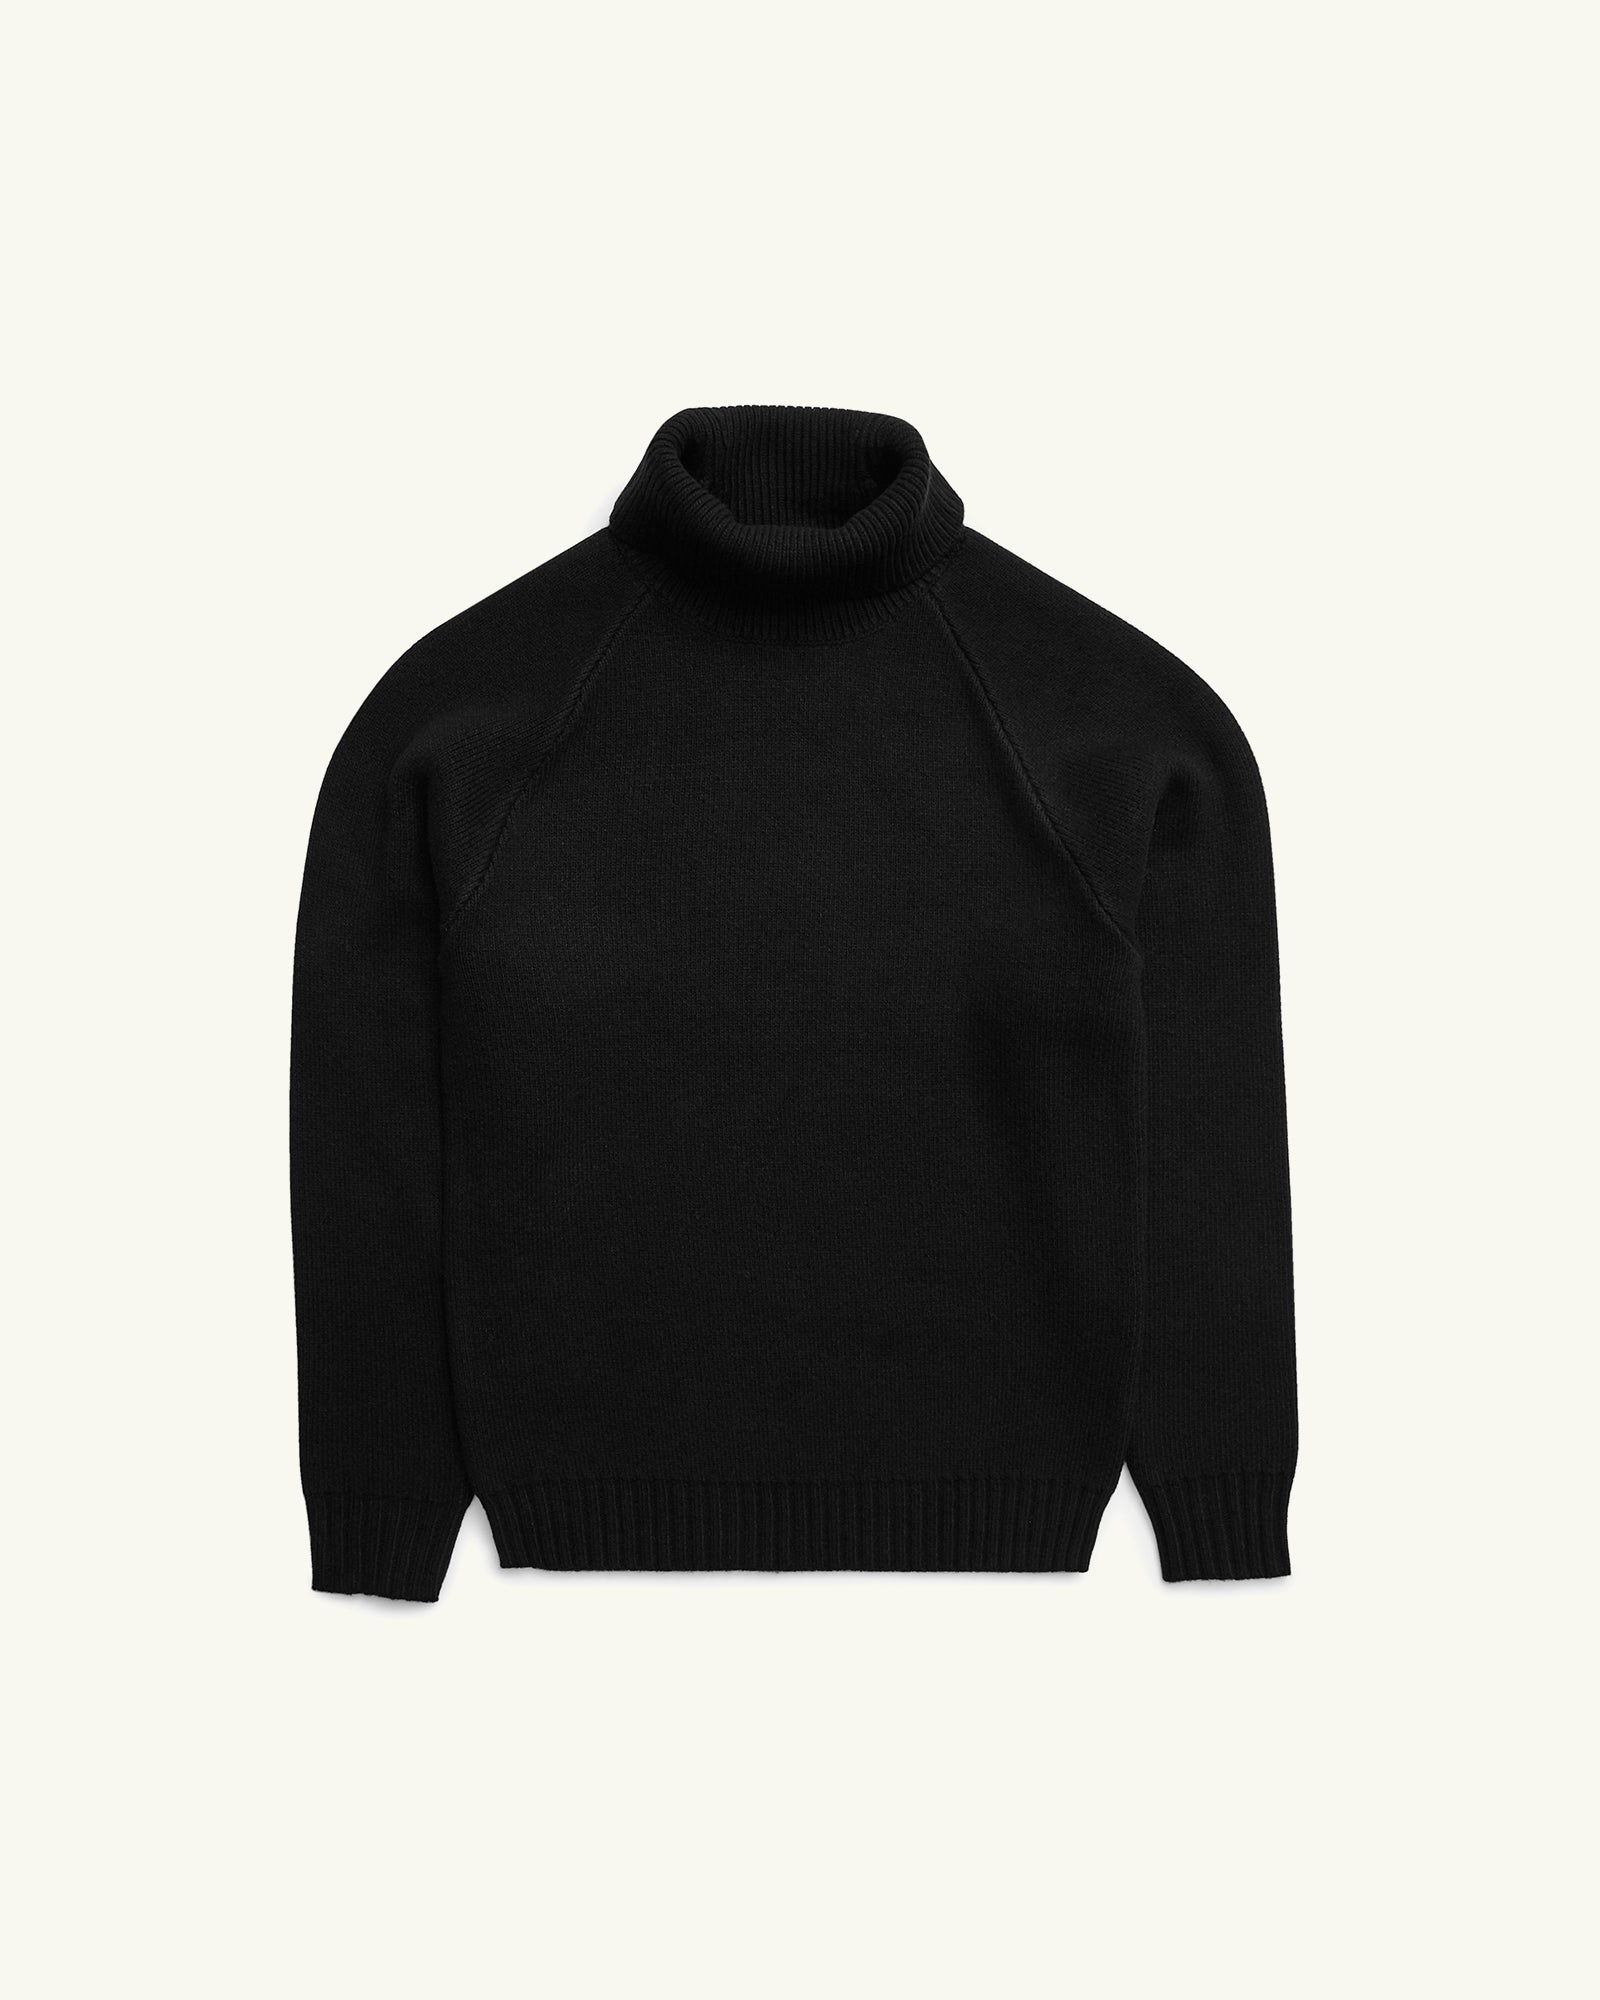 Turtleneck Knit Black